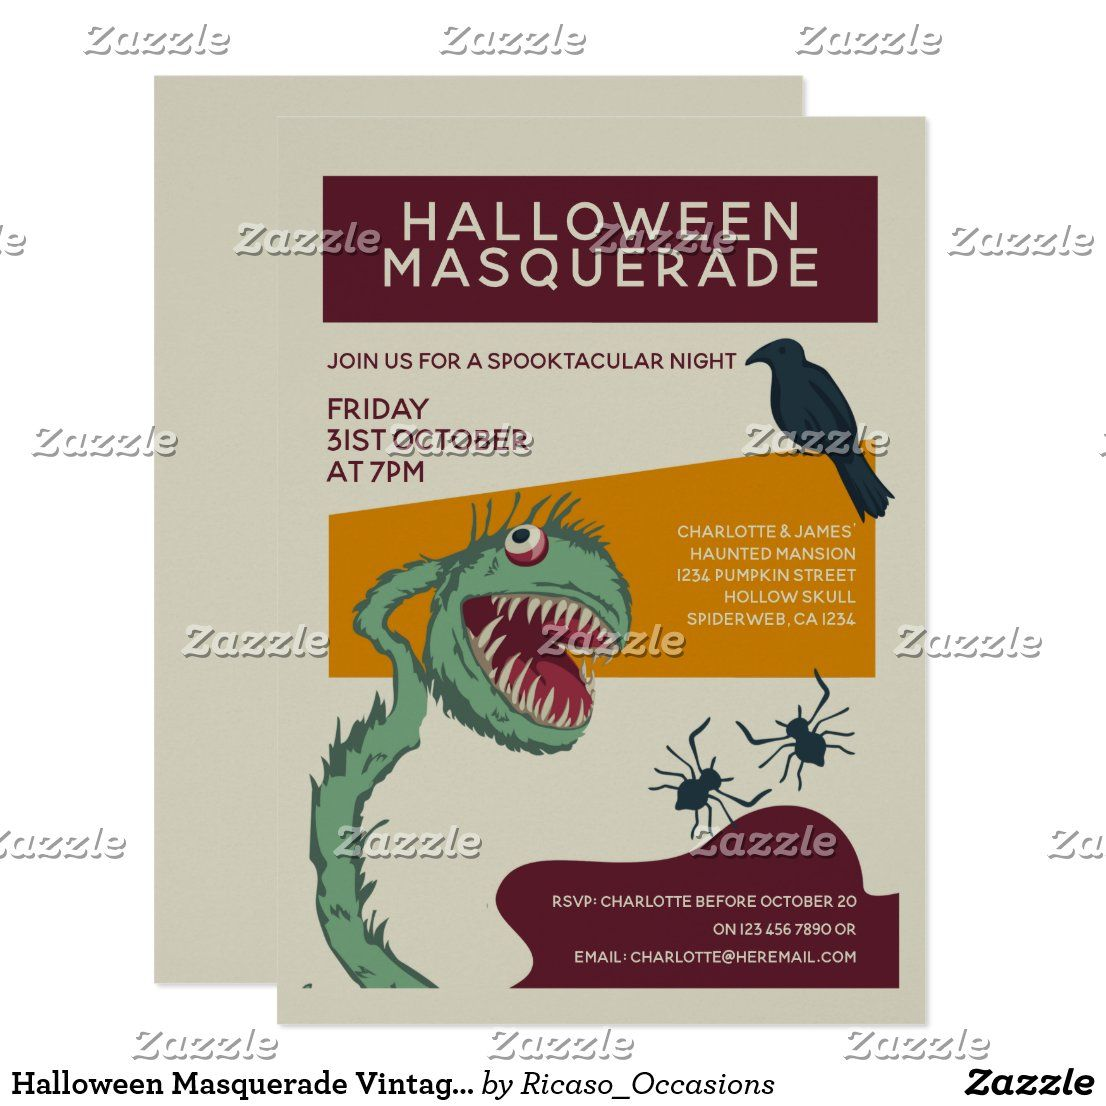 Monster Masquerade Halloween 2020 Update Halloween Masquerade Vintage Green Monster Invitation | Zazzle.